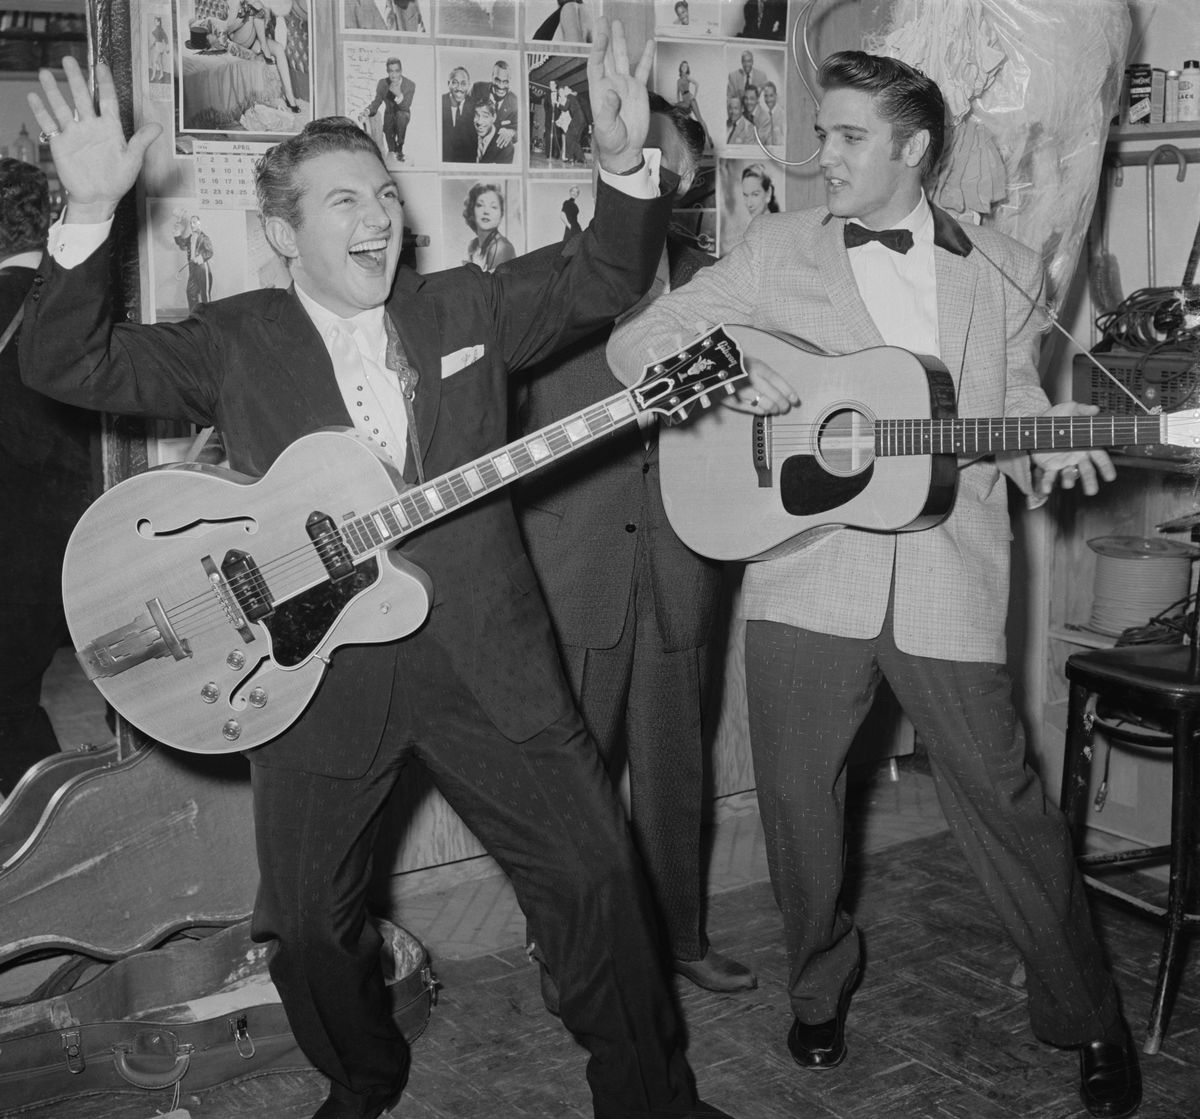 Slide 19 of 50: Liberace and Elvis Presley jam backstage at a night club in 1956. They first met when Liberace went to the Frontier to see Presley perform. Presley returned the favor and went to the Riviera to see Liberace's act.